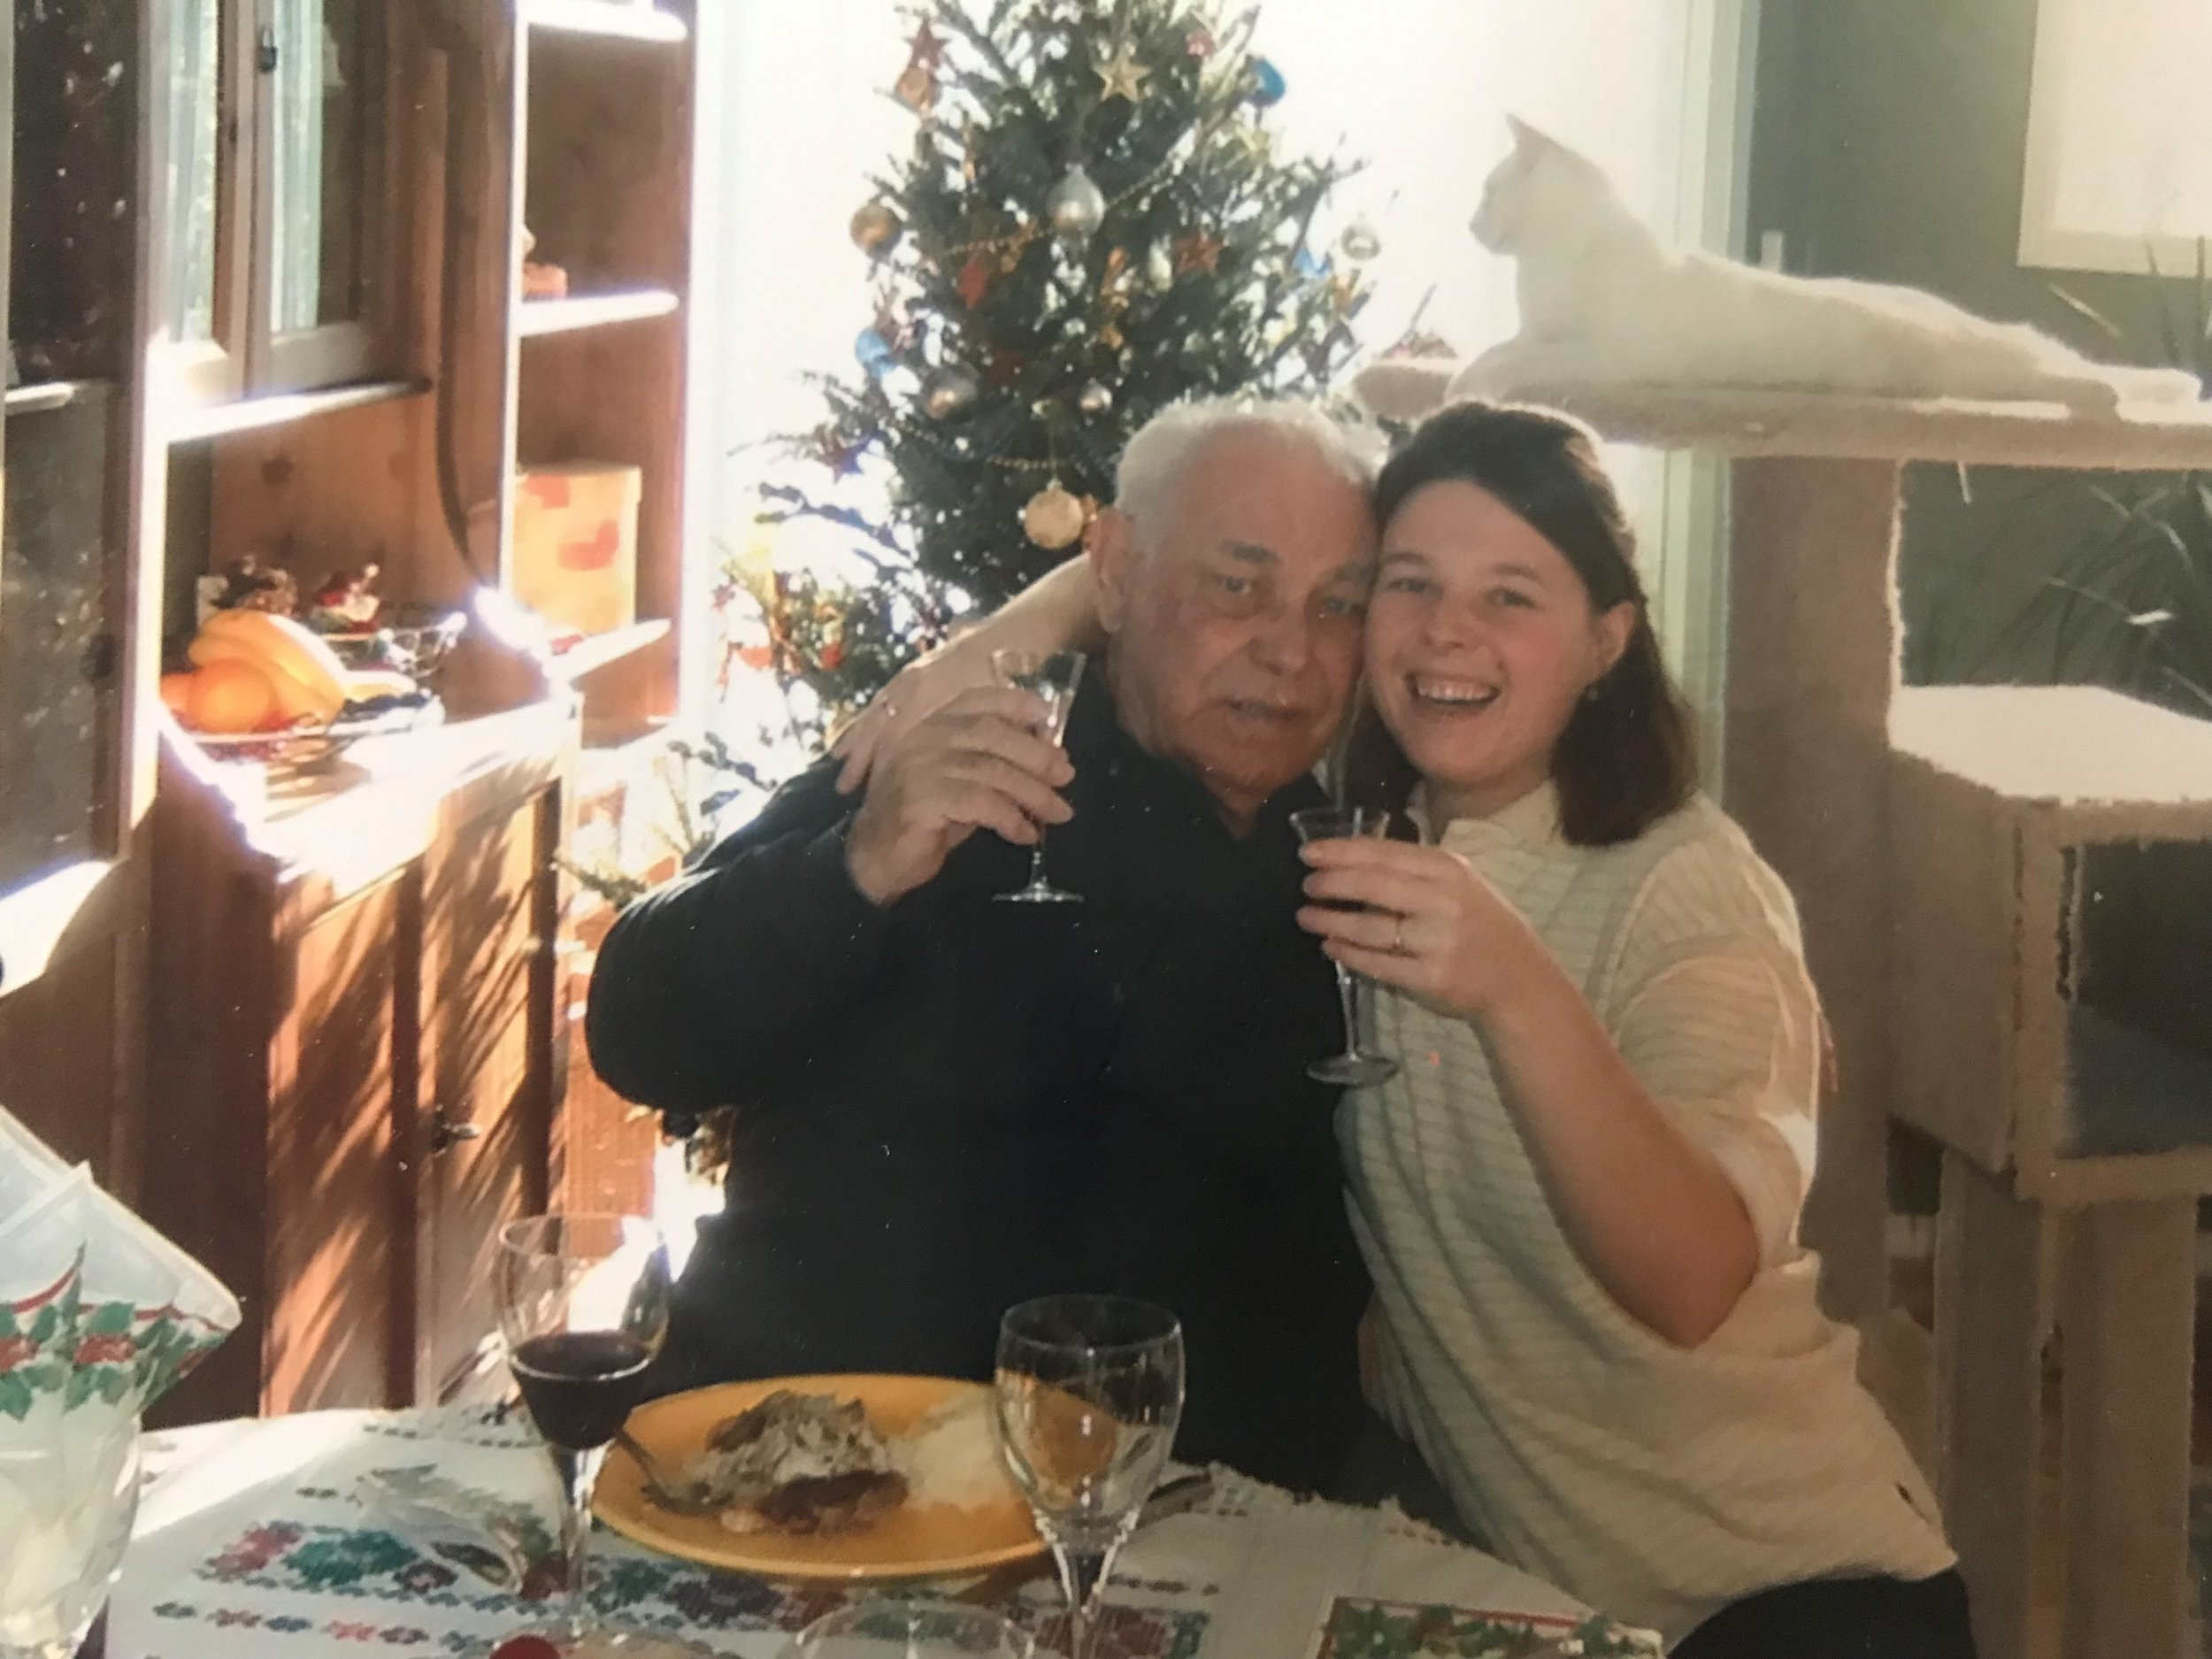 Judith, Founder of CCC, alongside her grandfather while he visited Canada in 2002.